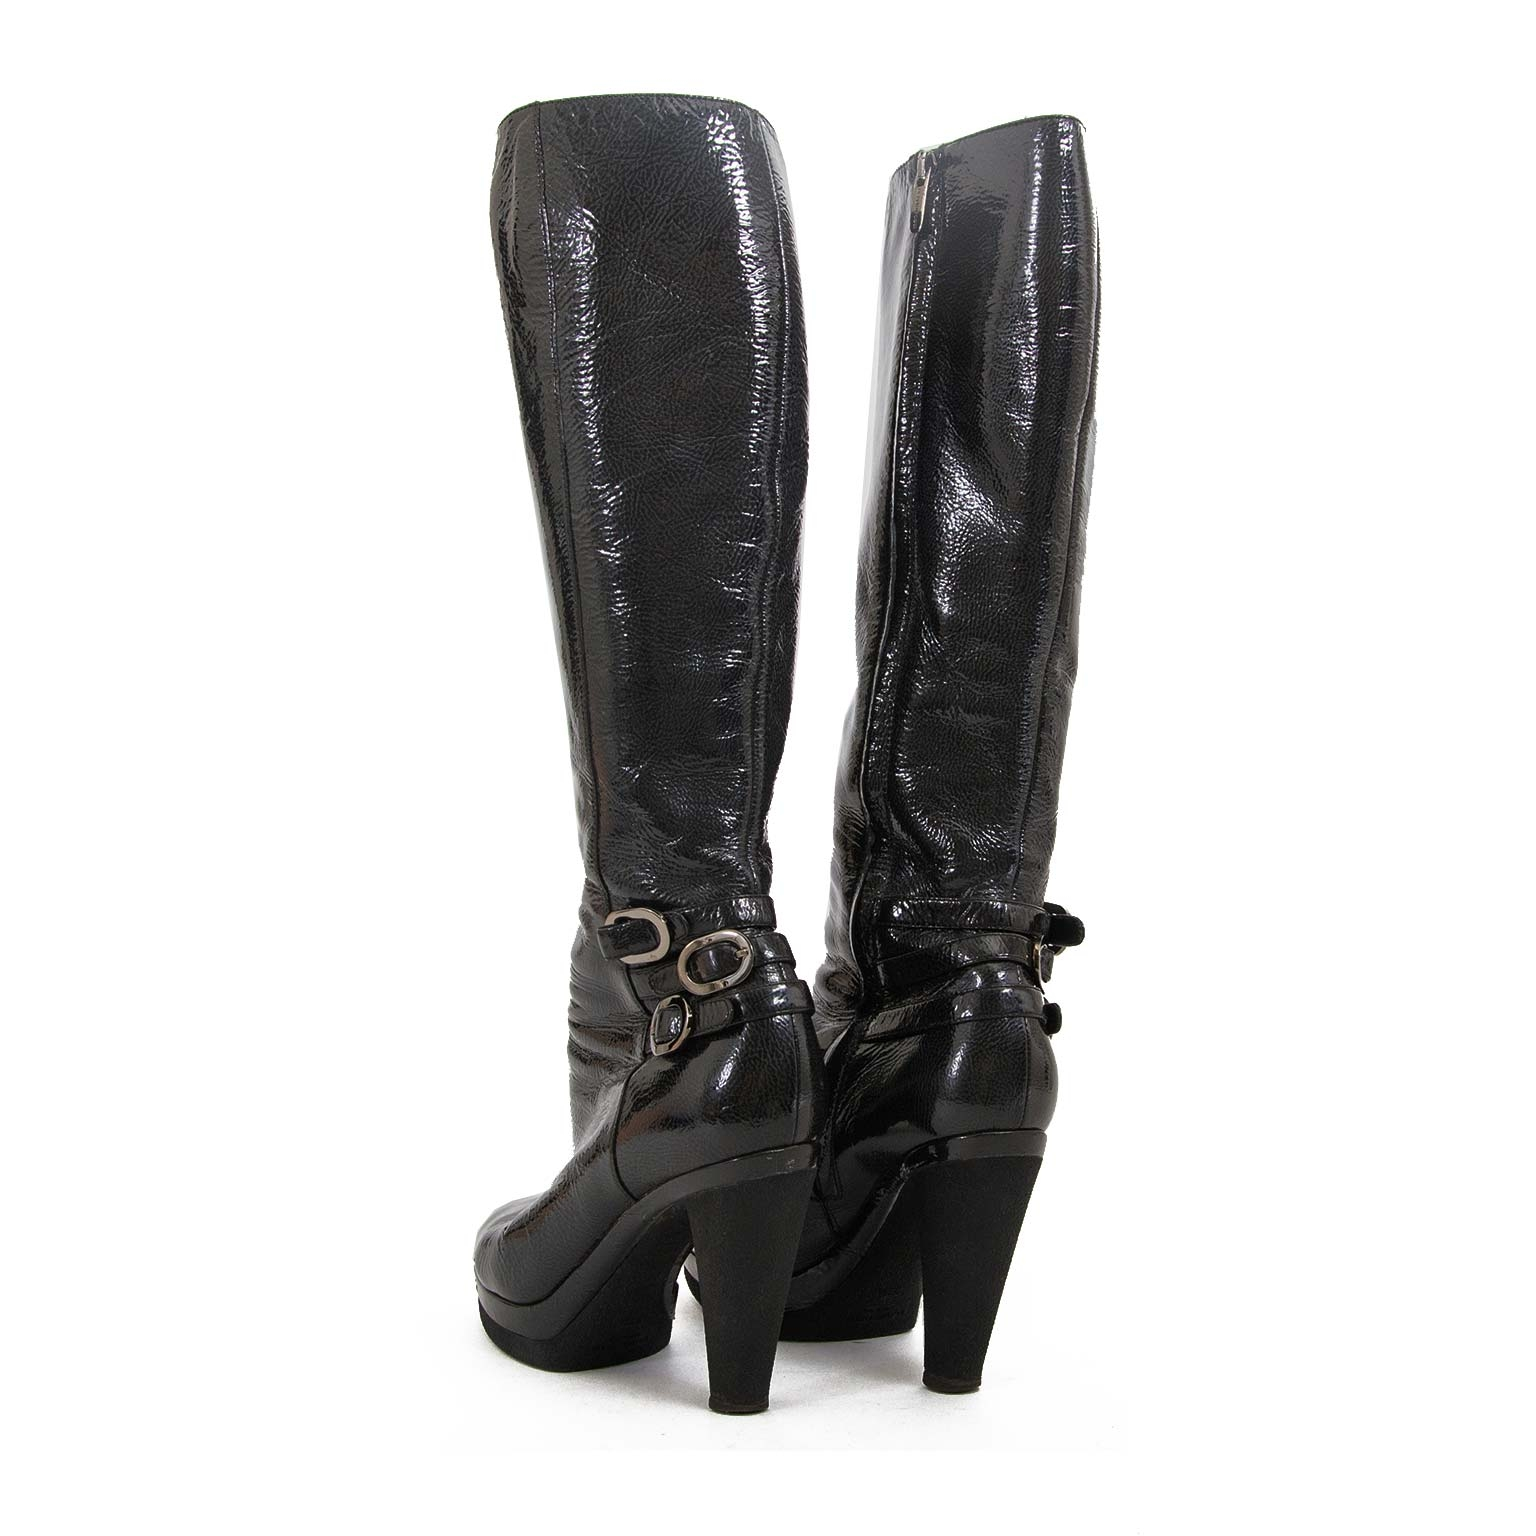 buy Sergio Rossi Black Patent Leather Boots - SIze 37,5 at labellov for the best price